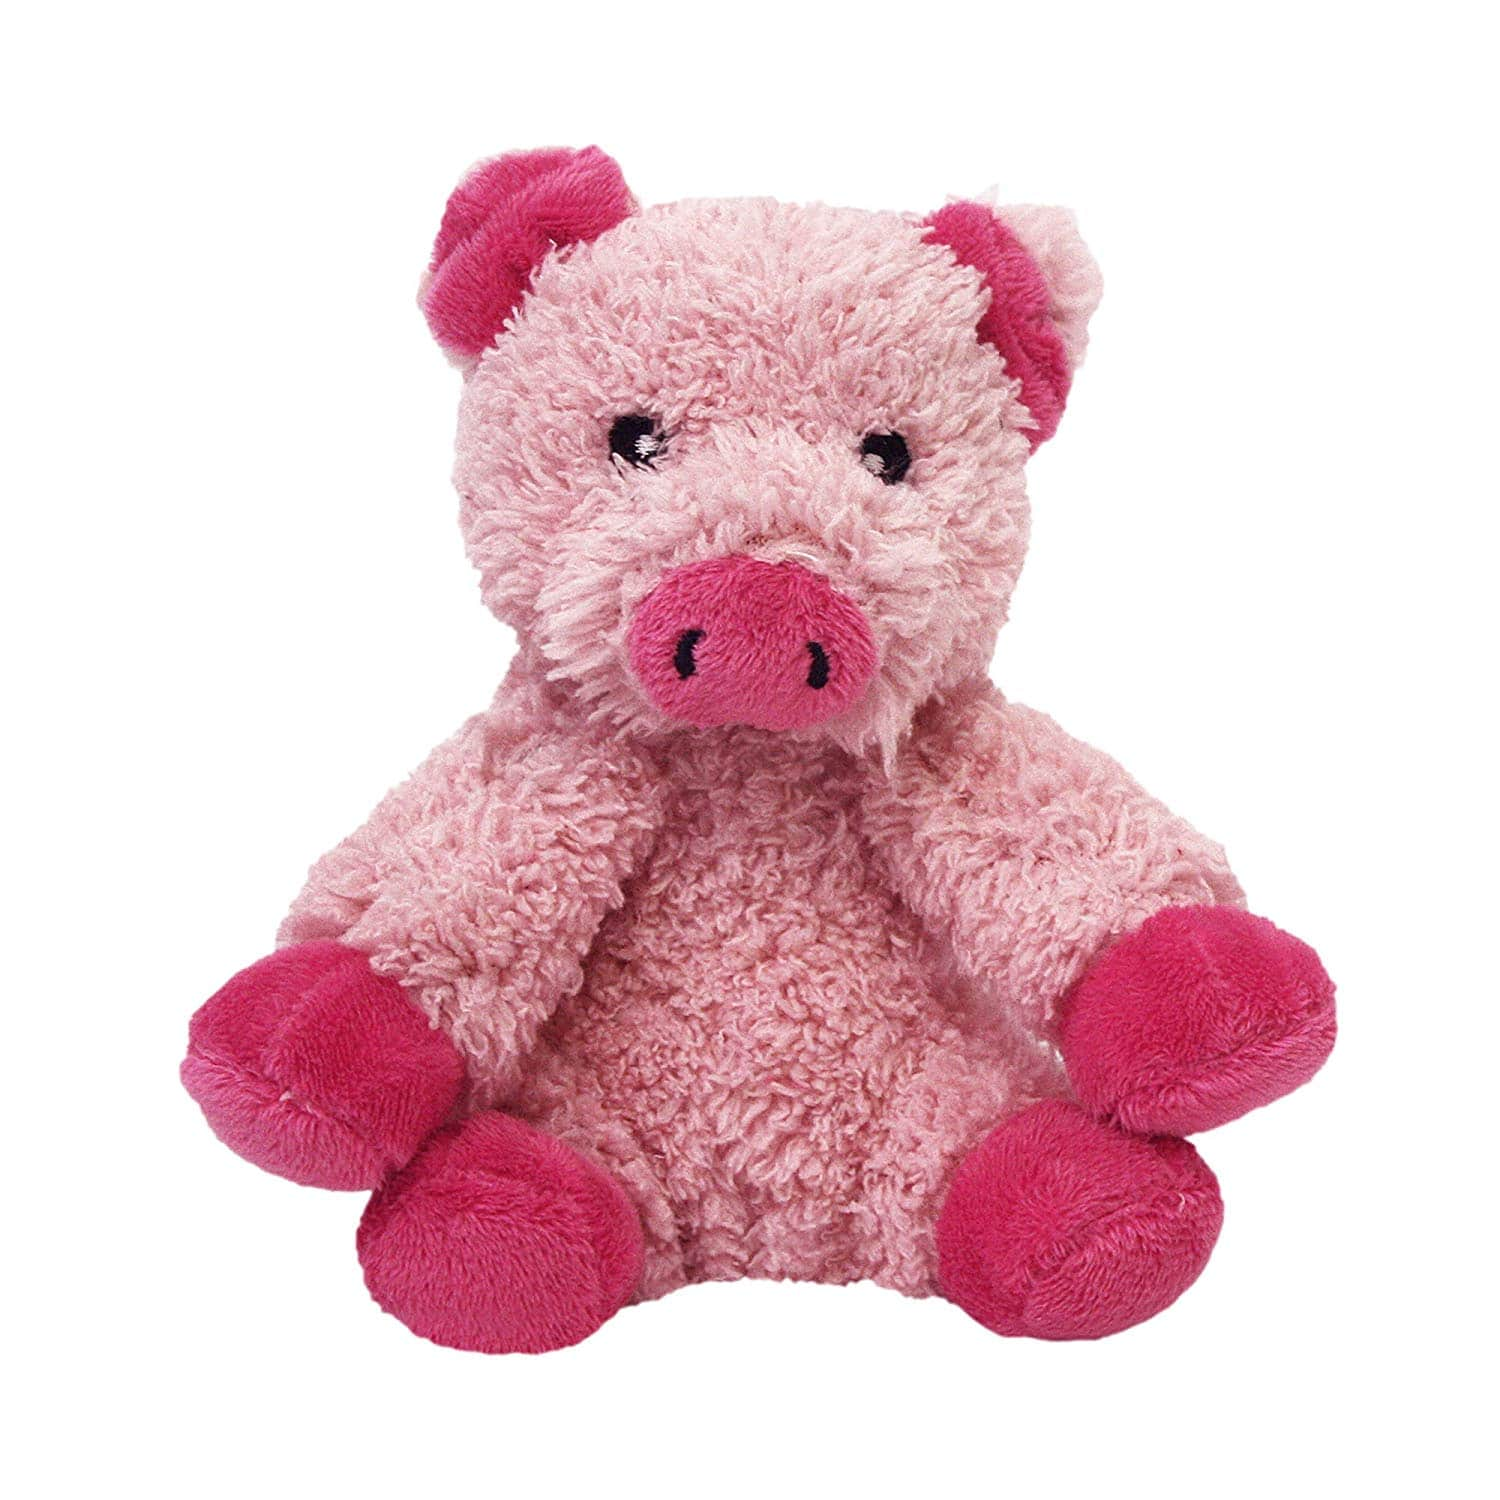 Multipet Look Who's Talking Pig - Talking Dog Toy - $1.66 & More (Cat, Monkey, Duck, Gorilla, Lobster, Fish, Koala)